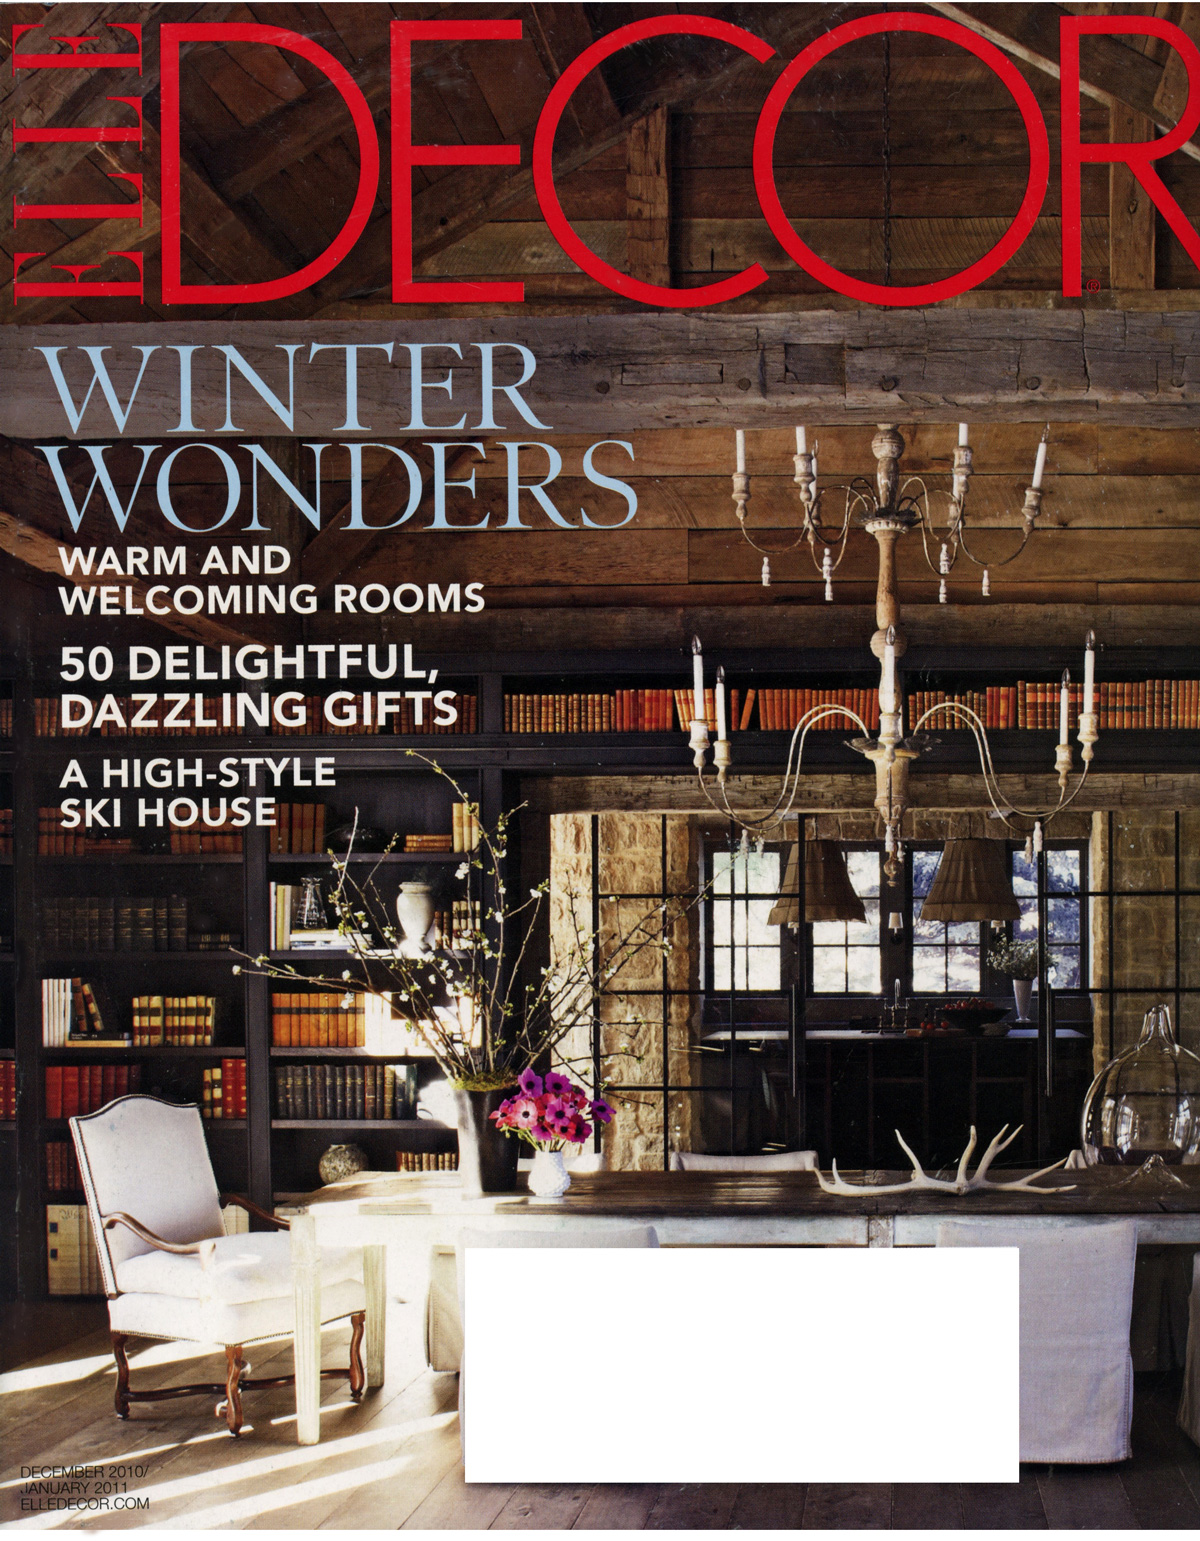 ATI---Elle-Decor-Wing-Chairs-Dec.-2010-Jan.-2011-Cover.jpg